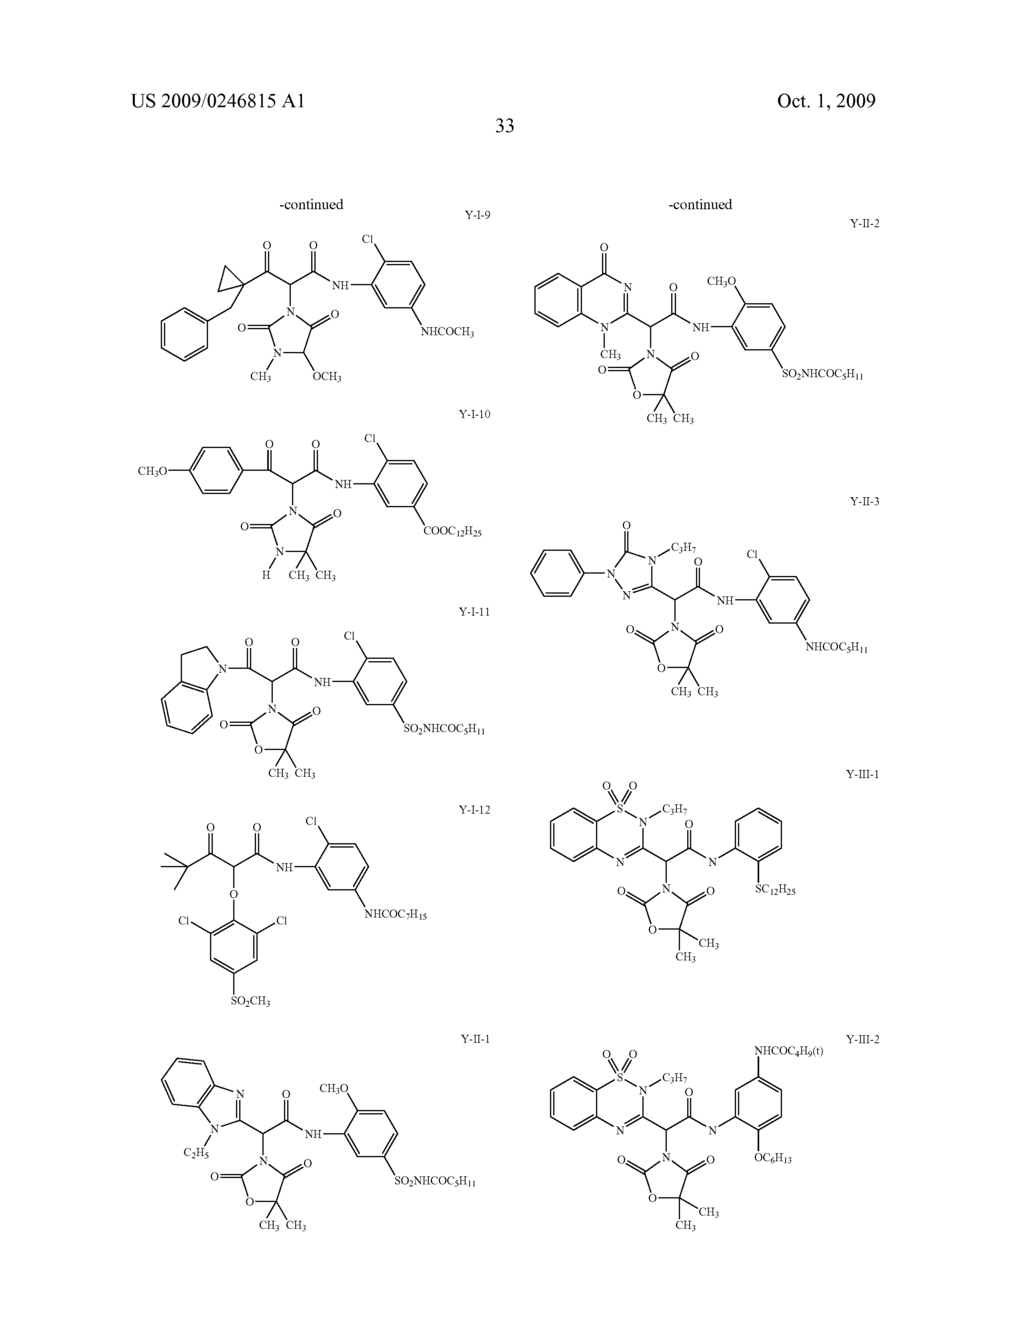 PROTEASE DETECTION MATERIAL, SET OF PROTEASE DETECTION MATERIALS, AND METHOD FOR MEASURING PROTEASE - diagram, schematic, and image 34